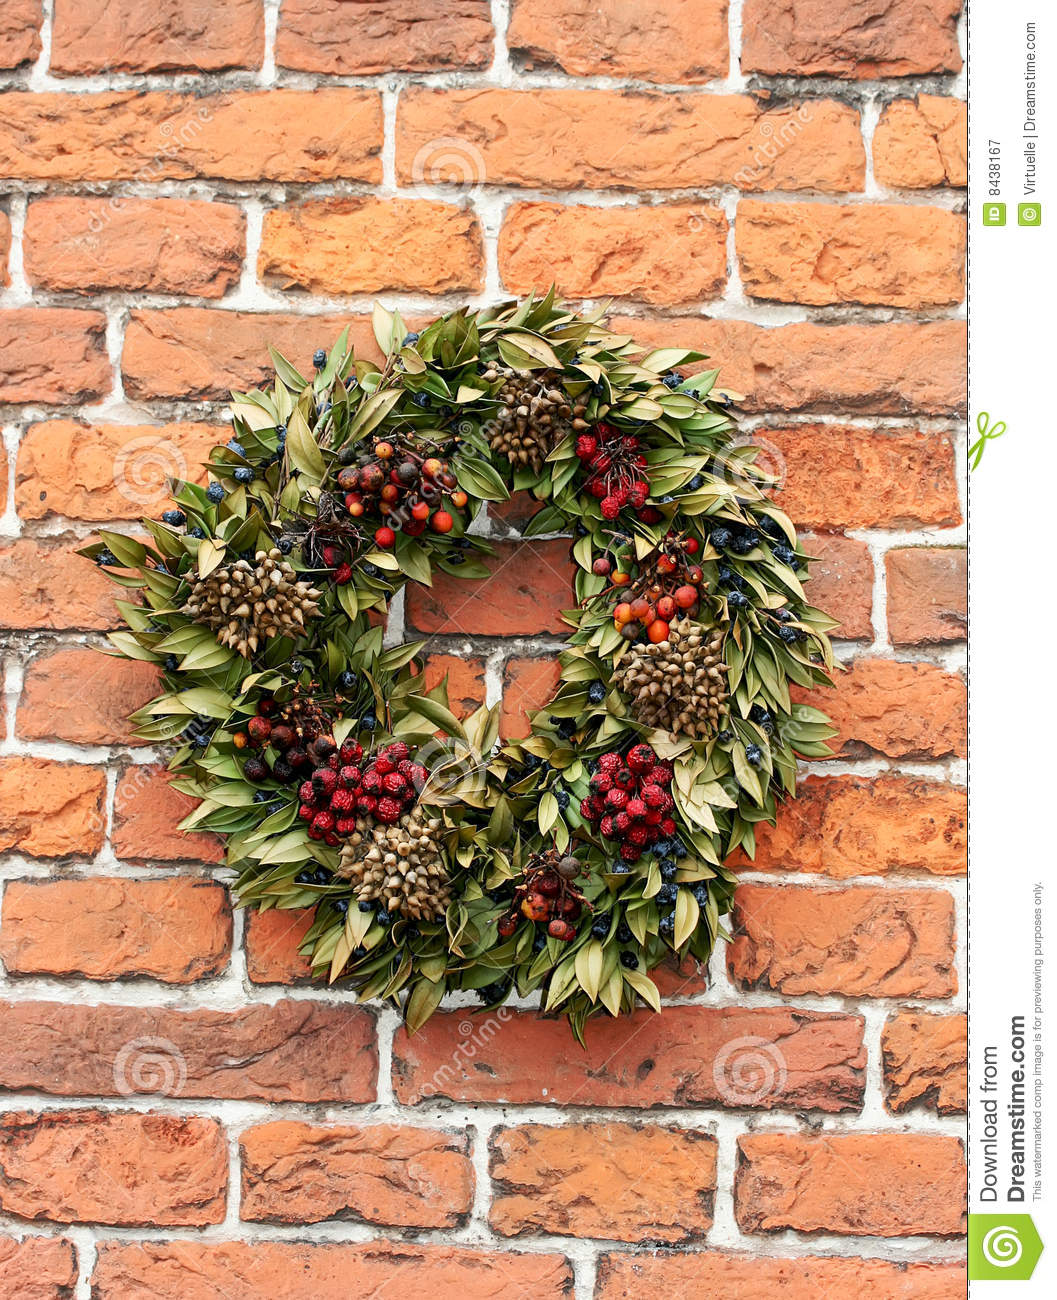 Garland with green leaves and berries